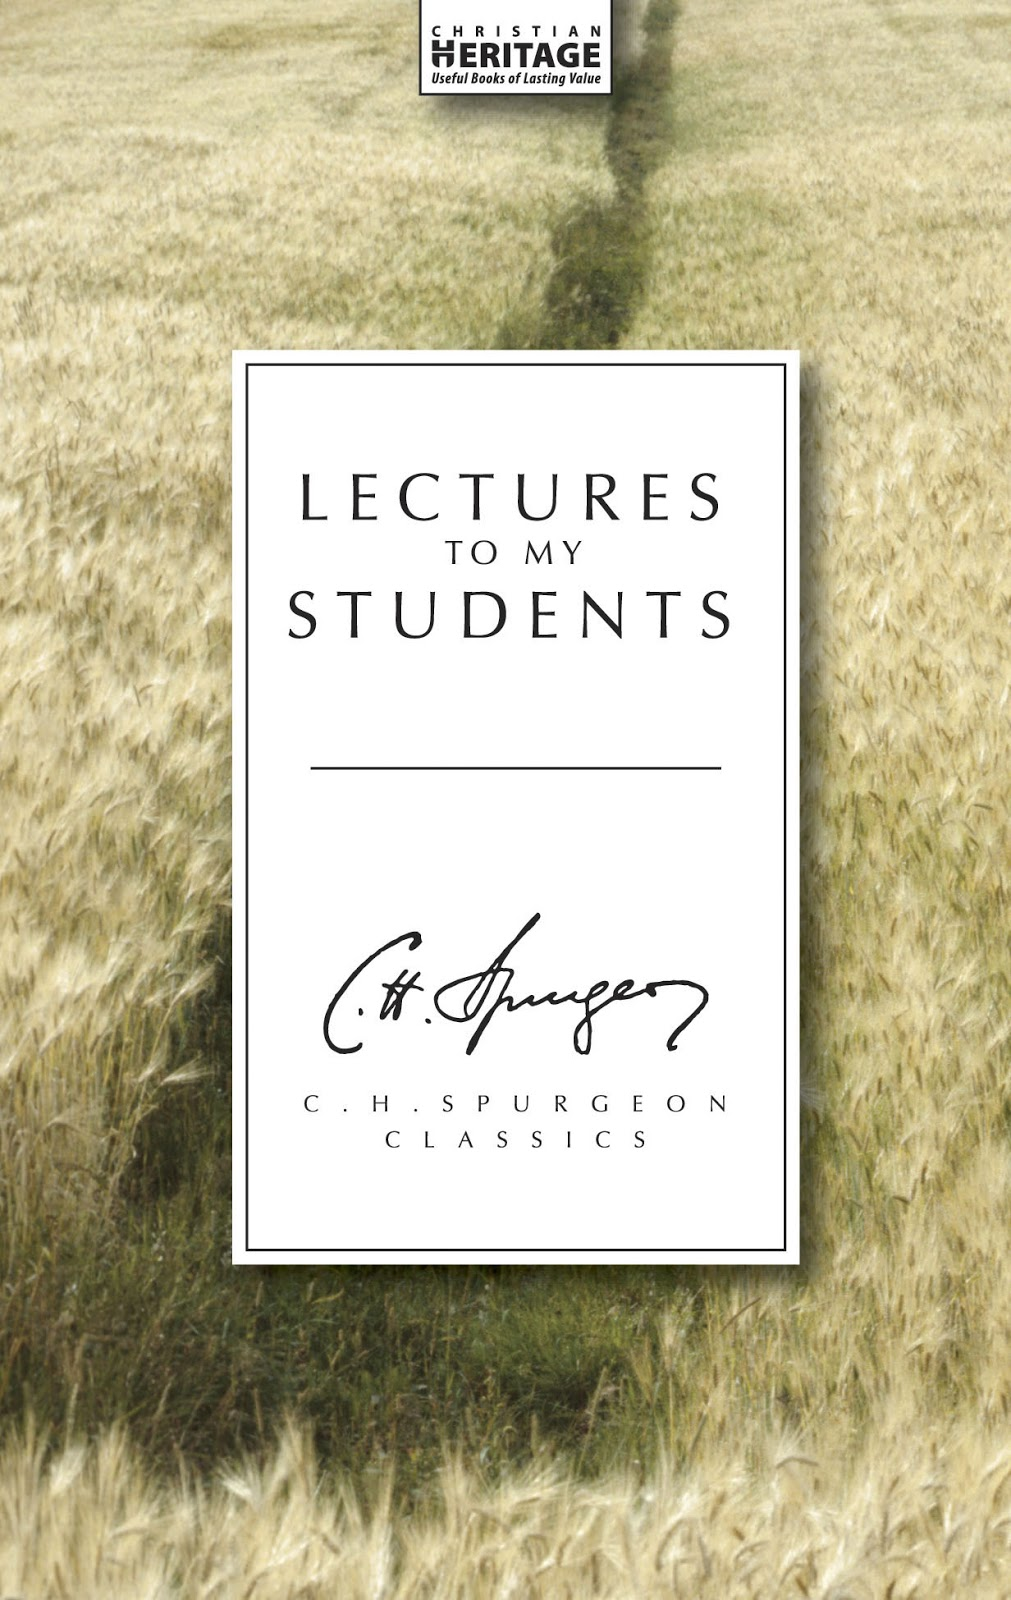 Charles Spurgeon-Lectures To My Students-